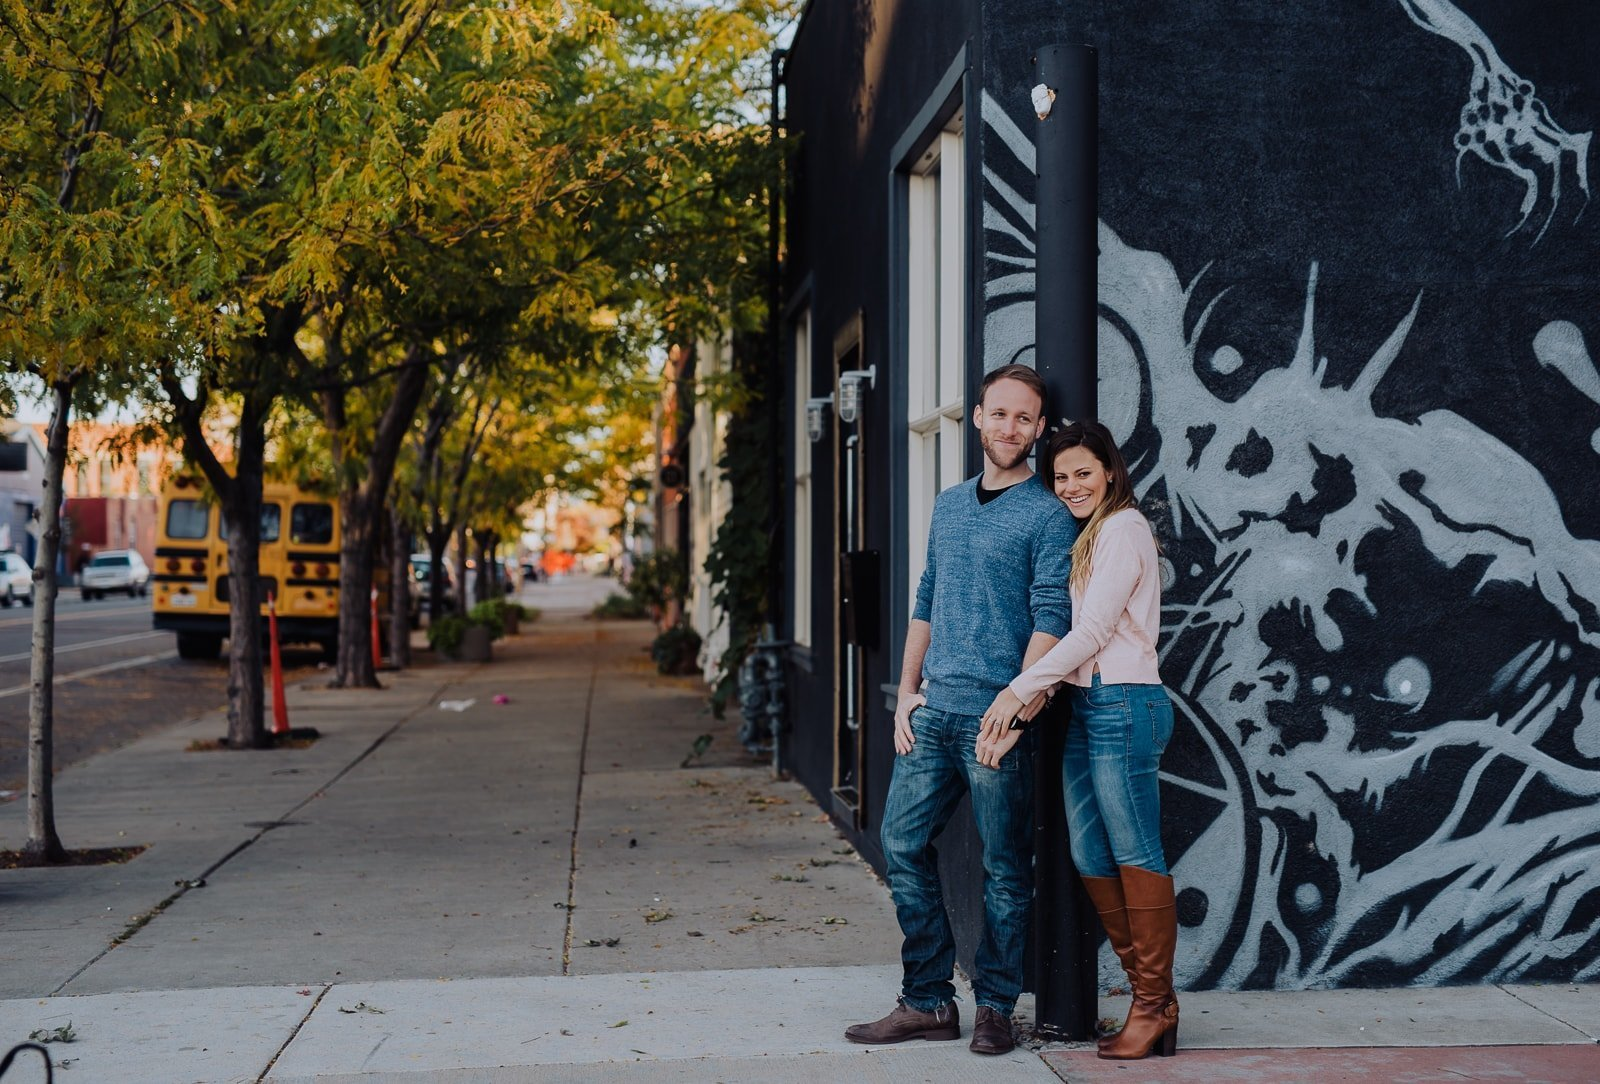 JosieV-Photography-Denver-engagement (7 of 7)